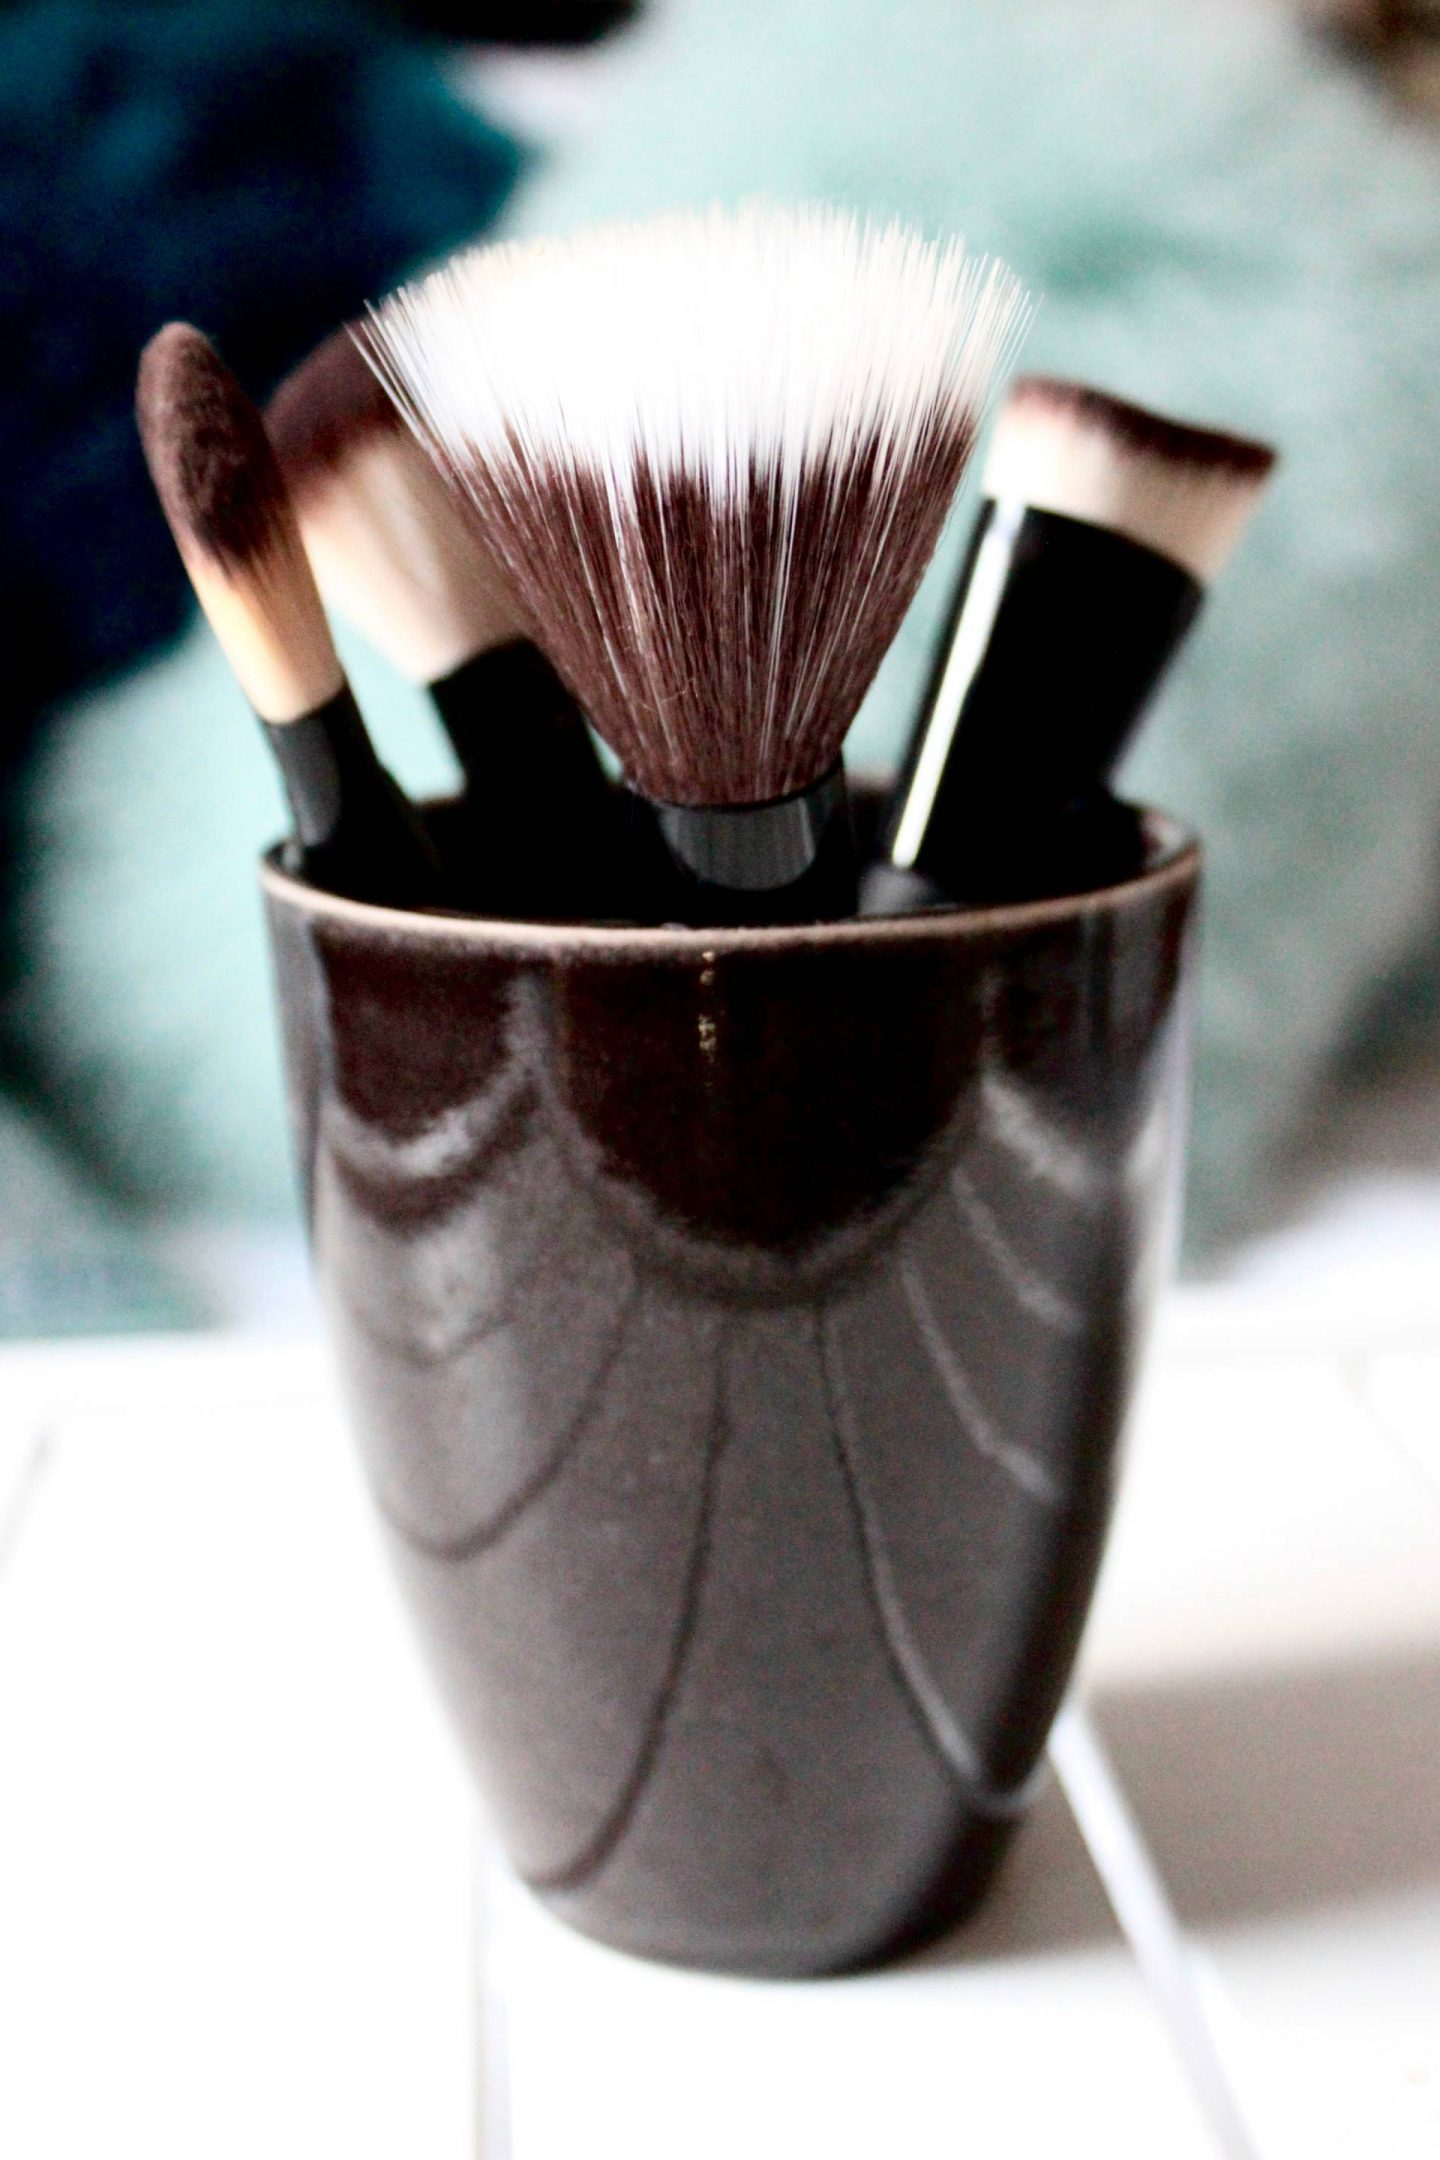 My new favourite makeup brushes from L'Oreal